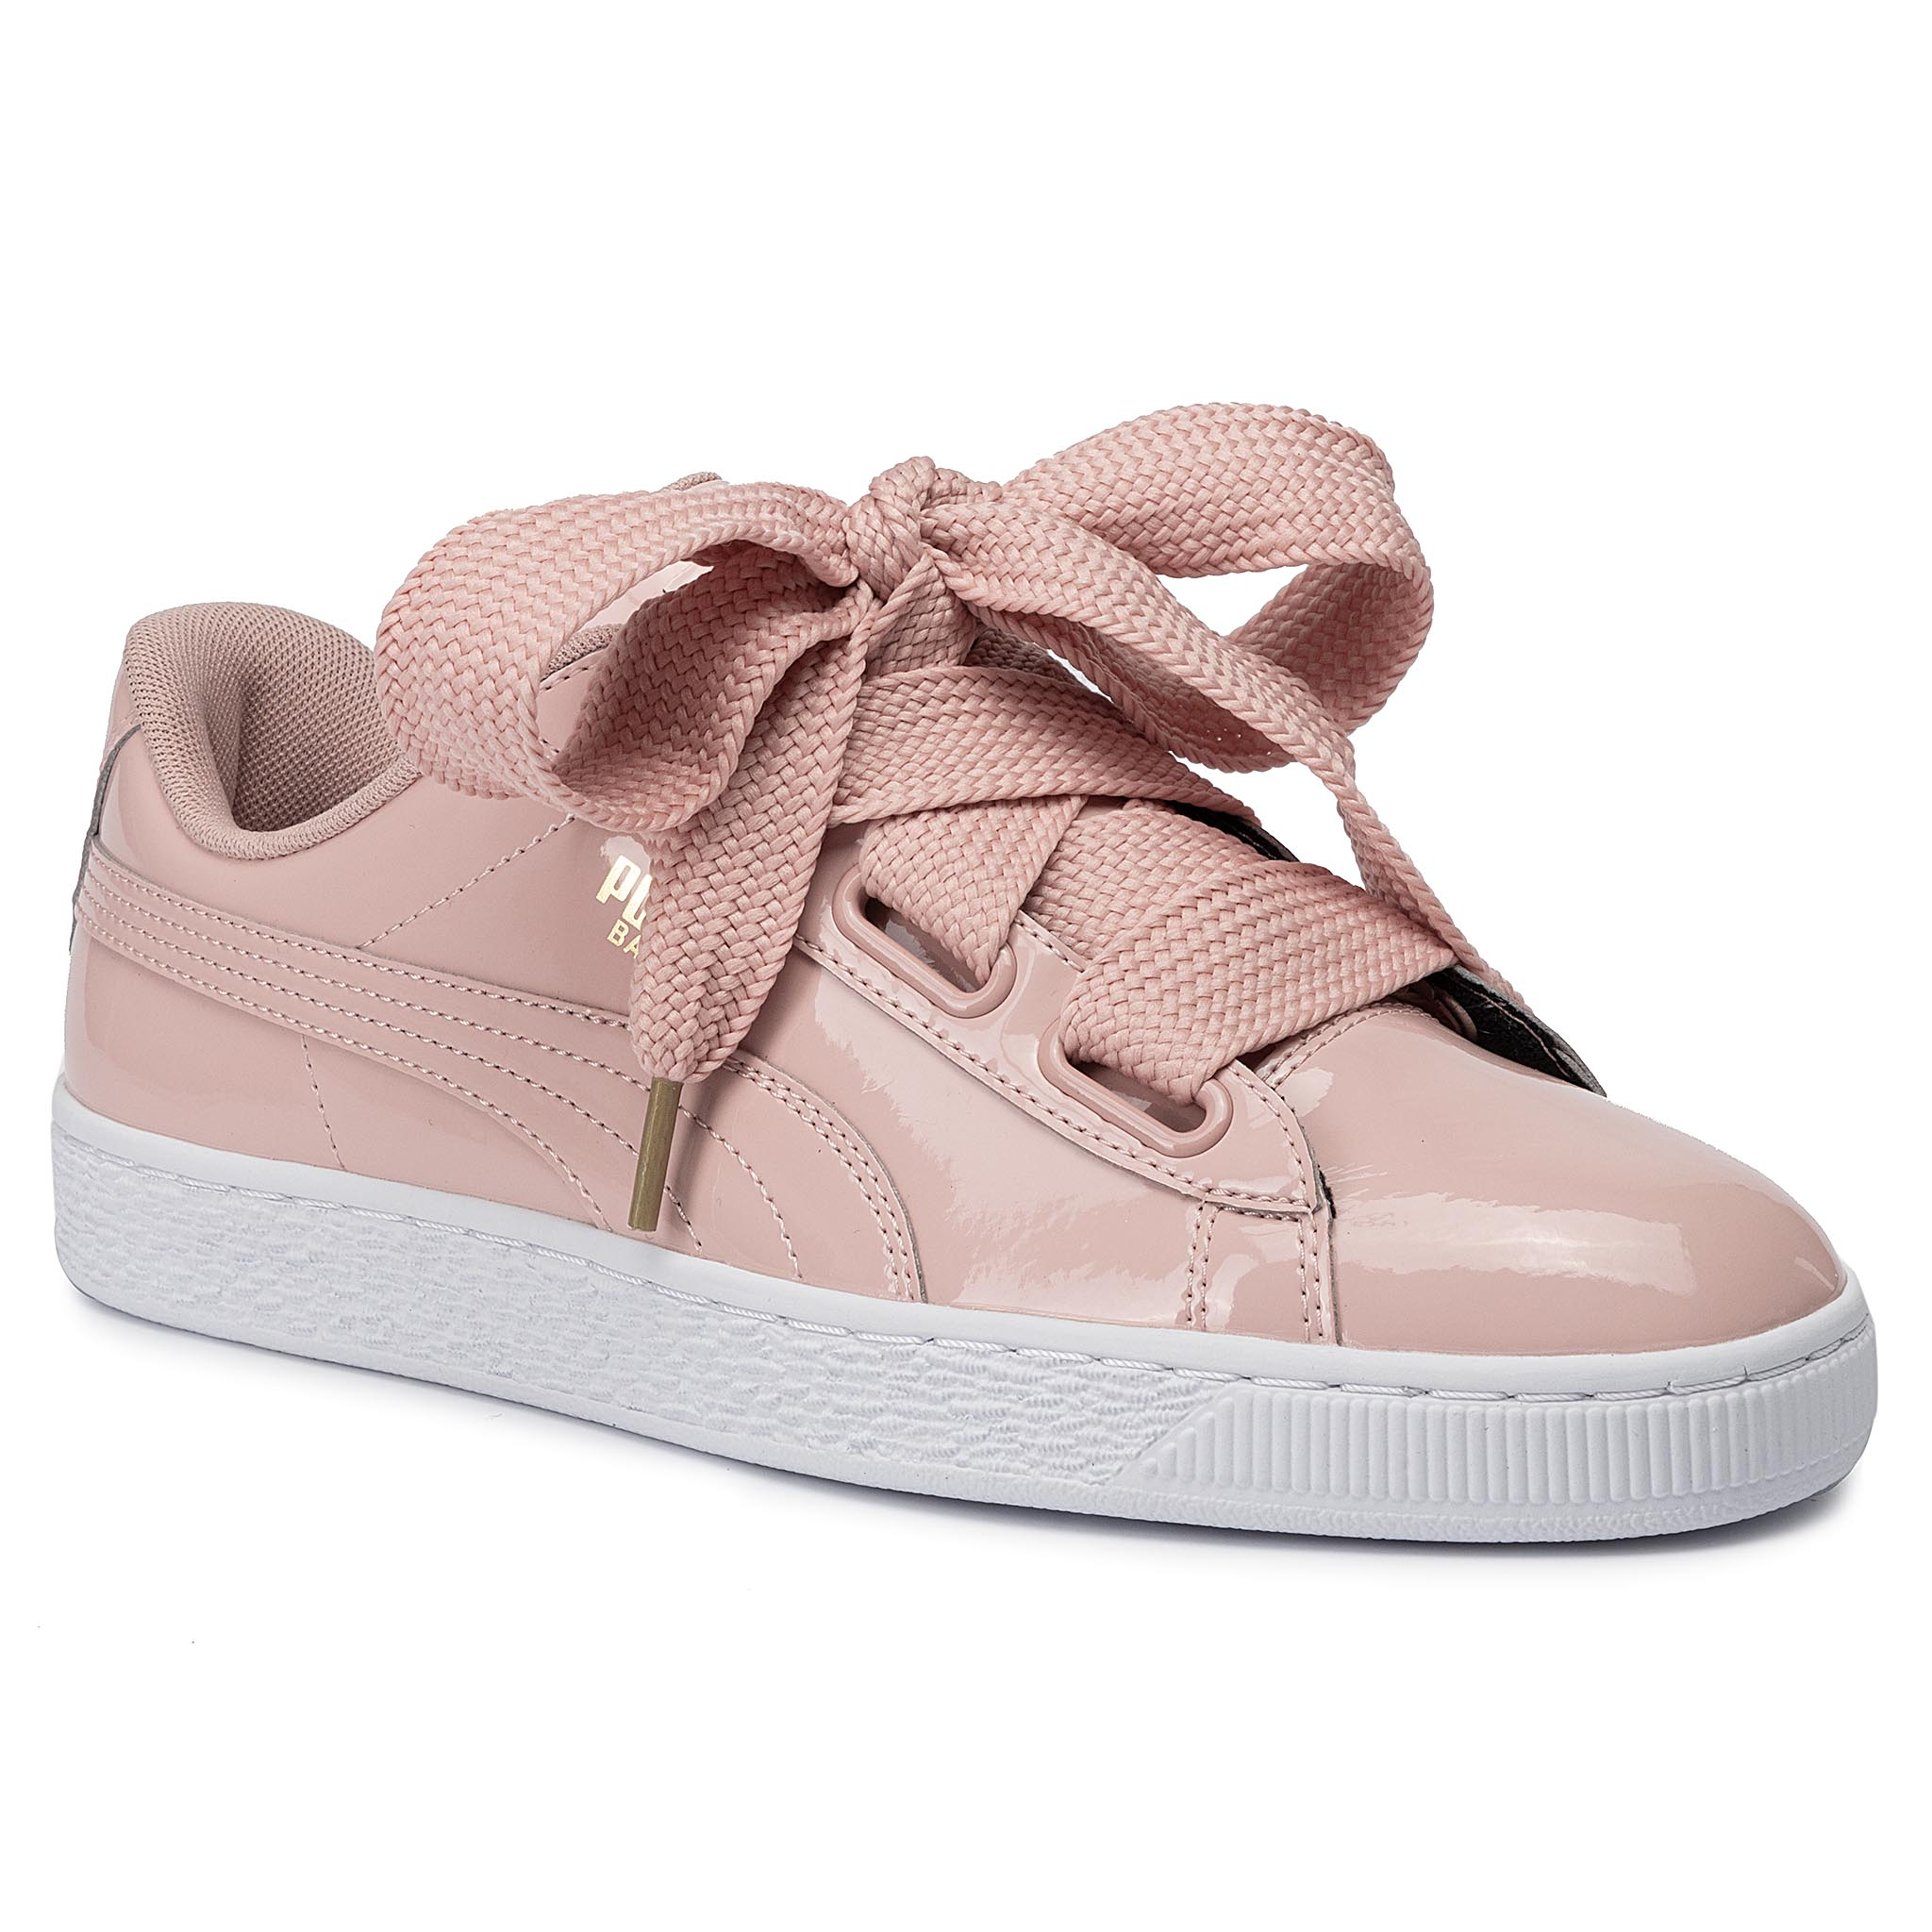 Sneakers Puma - Basket Heart Patent Wn's 363073 11 Peach Beige/Peach Beige imagine epantofi.ro